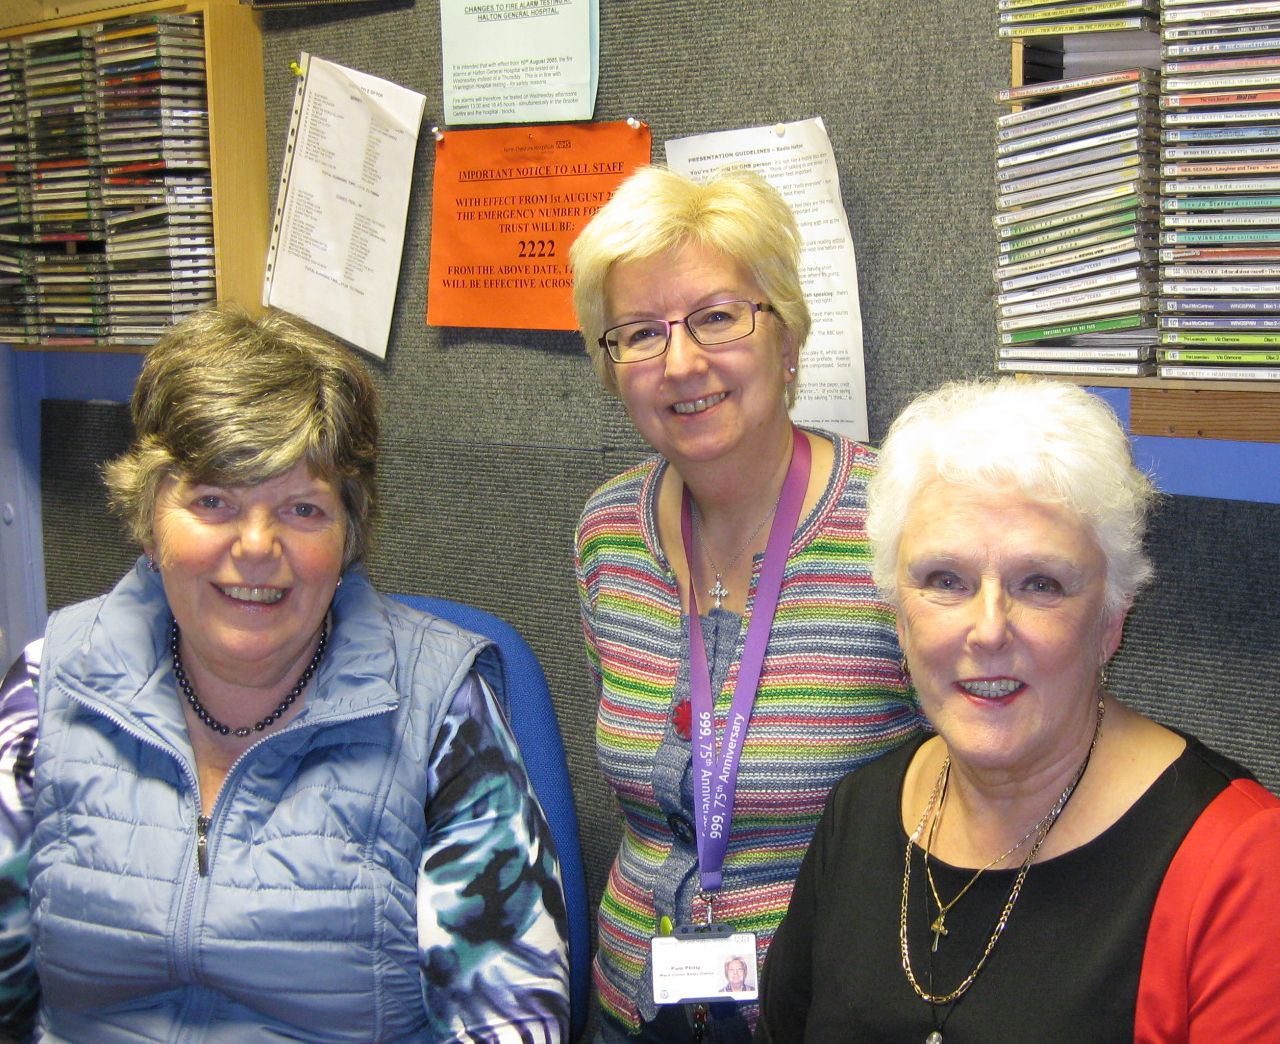 June Snowden with Pam Eastwood and Mary Hill